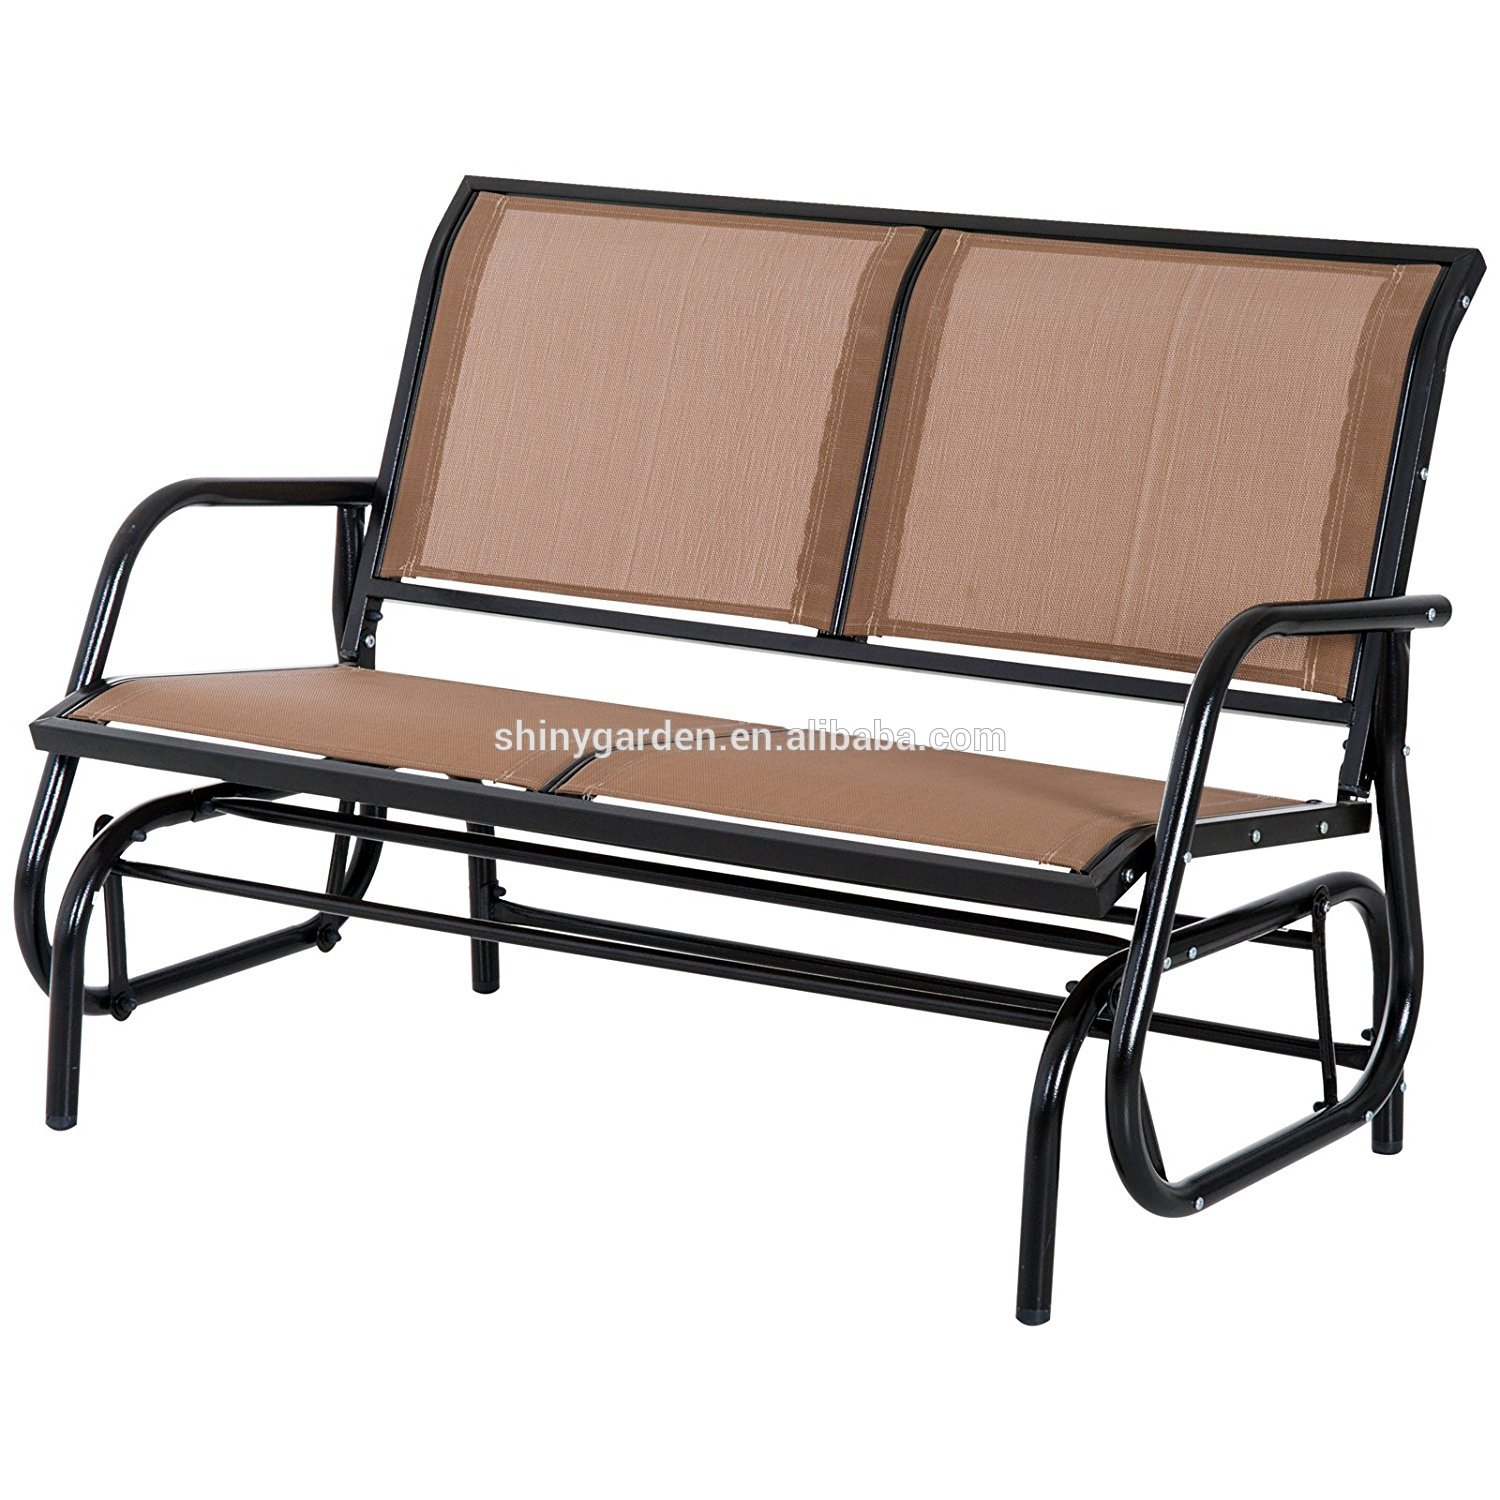 Outdoor Swing Glider Chair,patio Bench For 2 Person,garden Rocking Seating  – Buy Swing Glider Chair Product On Alibaba With Rocking Glider Benches (View 12 of 25)